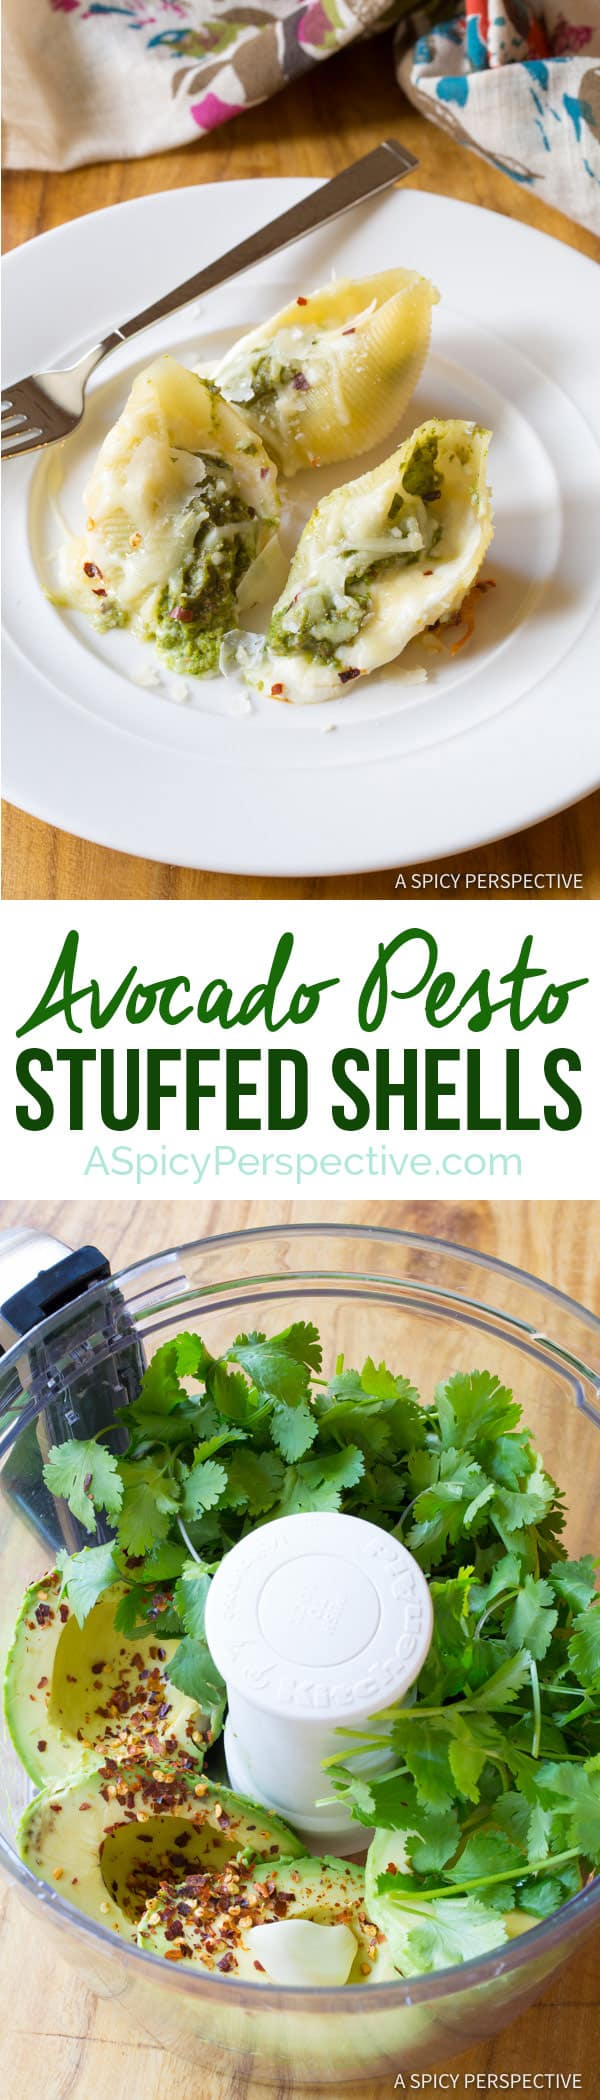 Easy Avocado Pesto Stuffed Shells Recipe | ASpicyPerspective.com